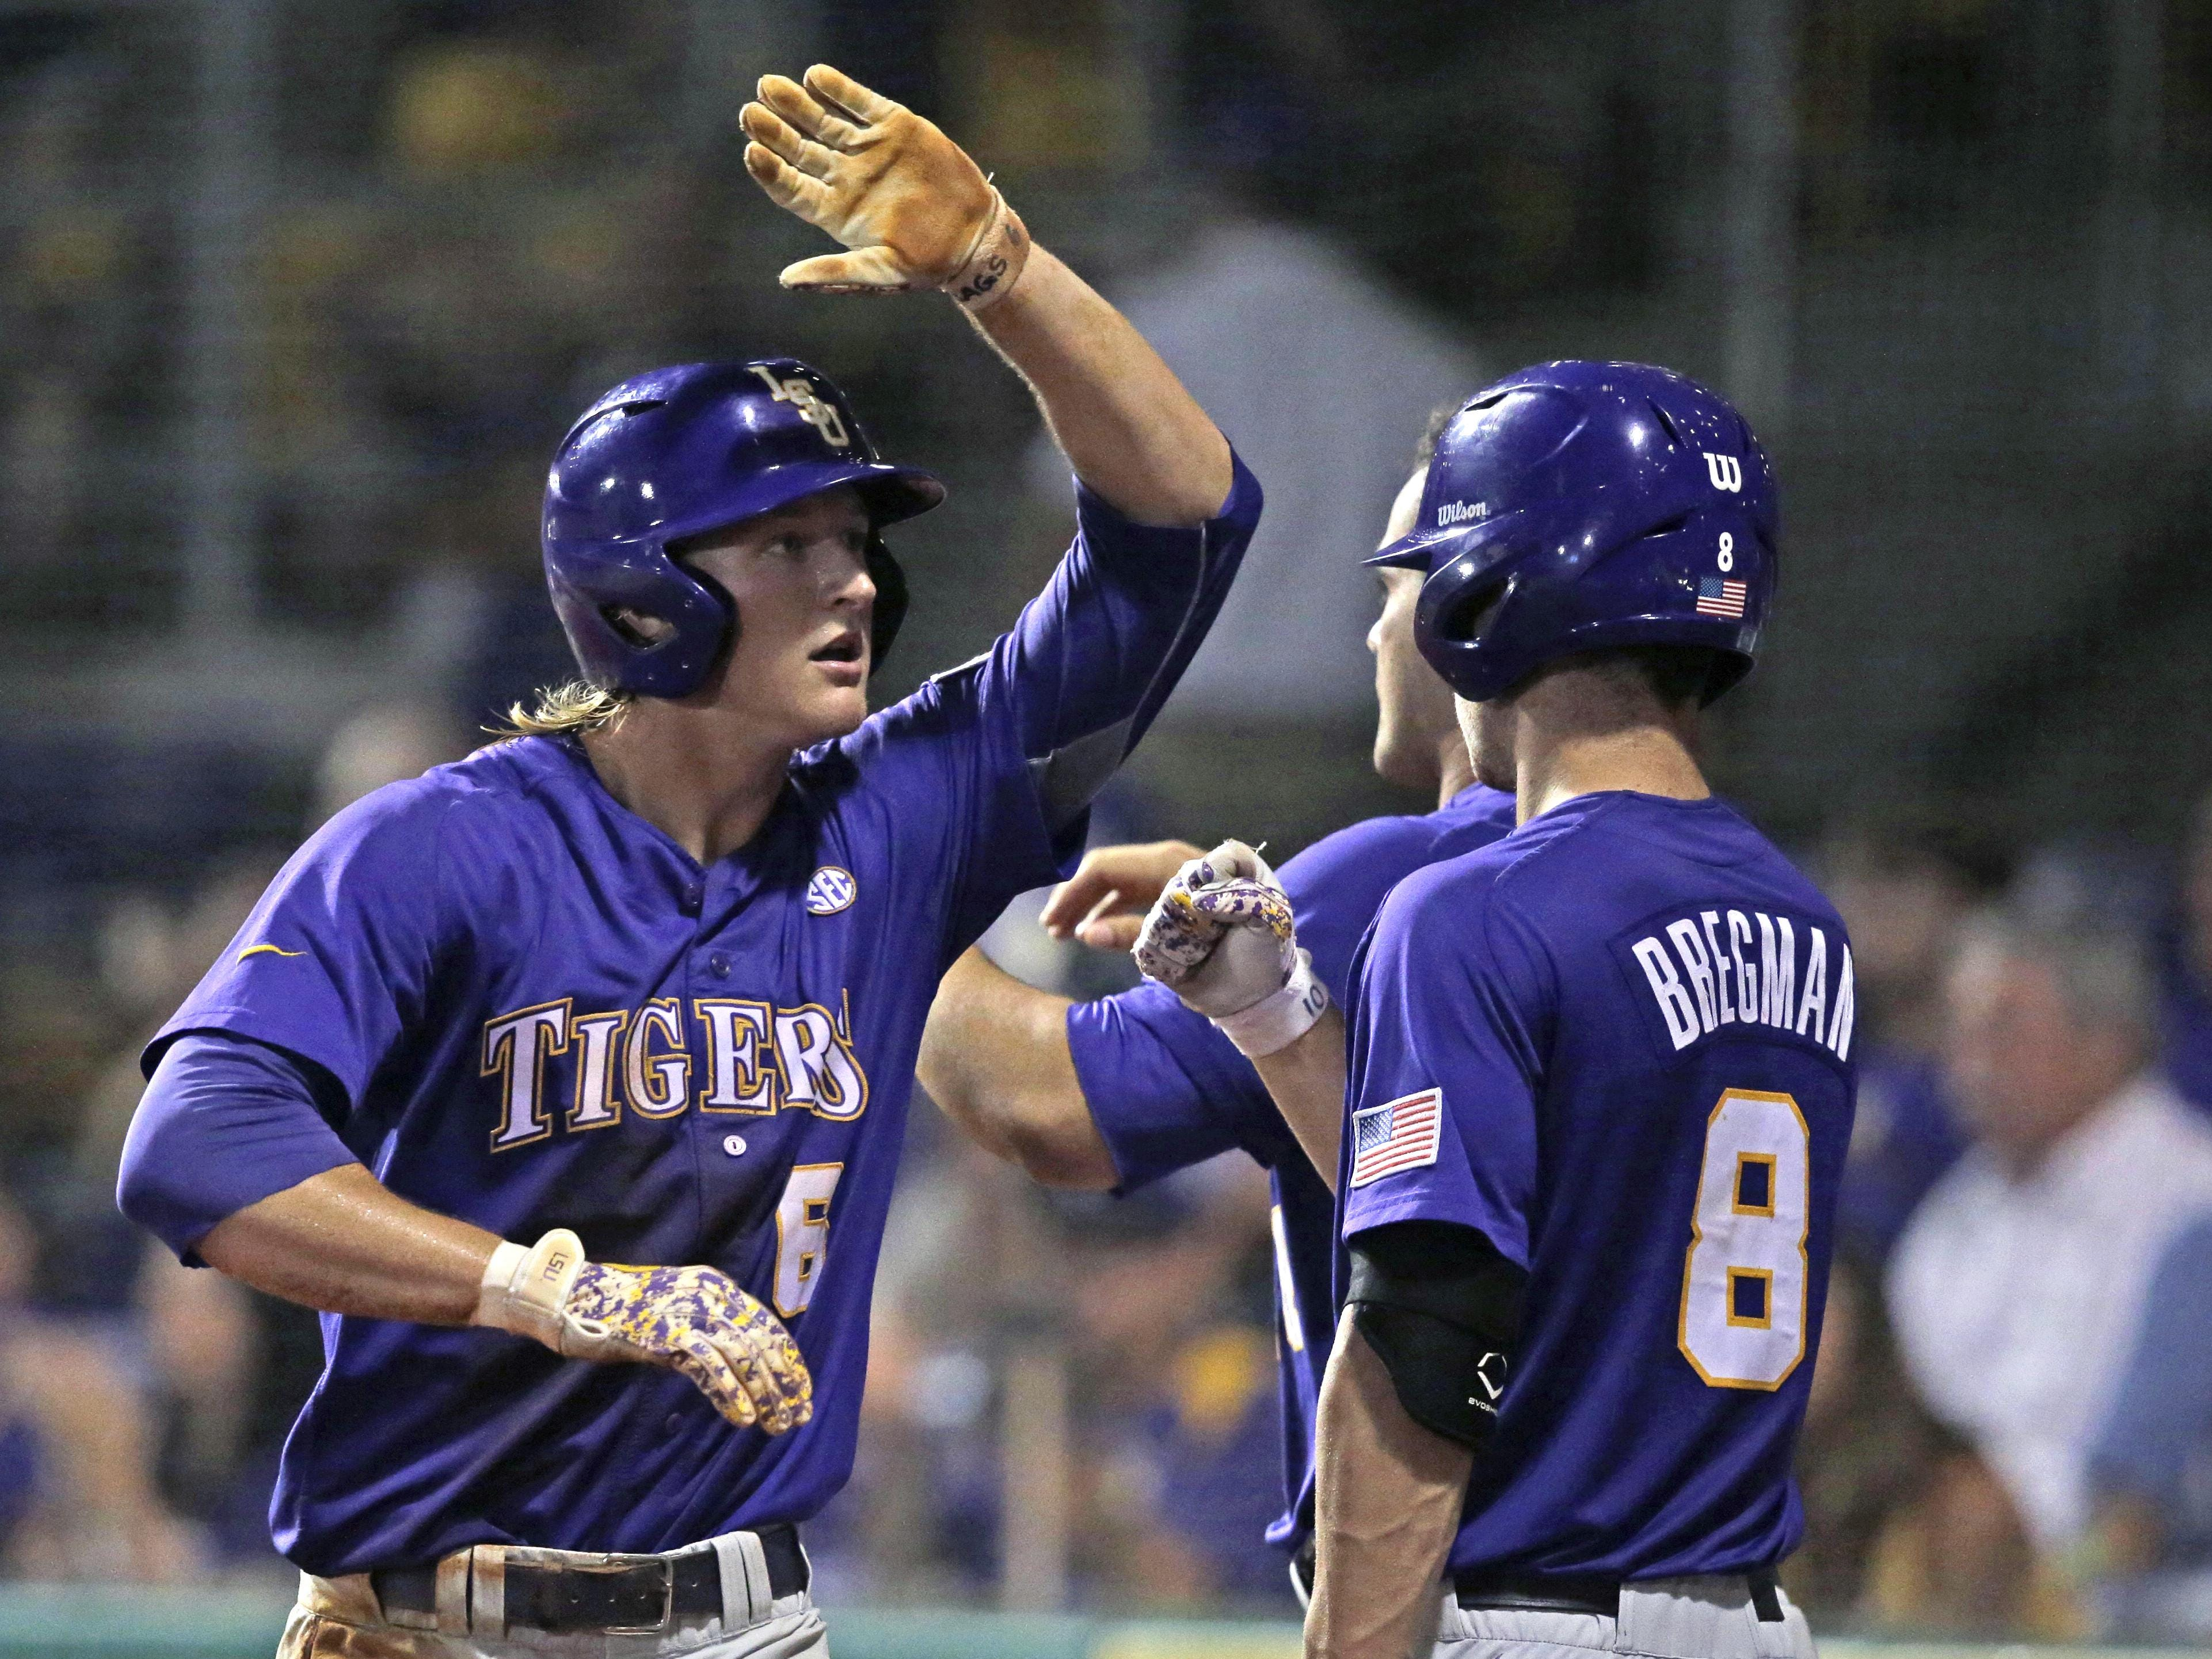 LSU baseball game postponed until noon Monday | USA TODAY ...